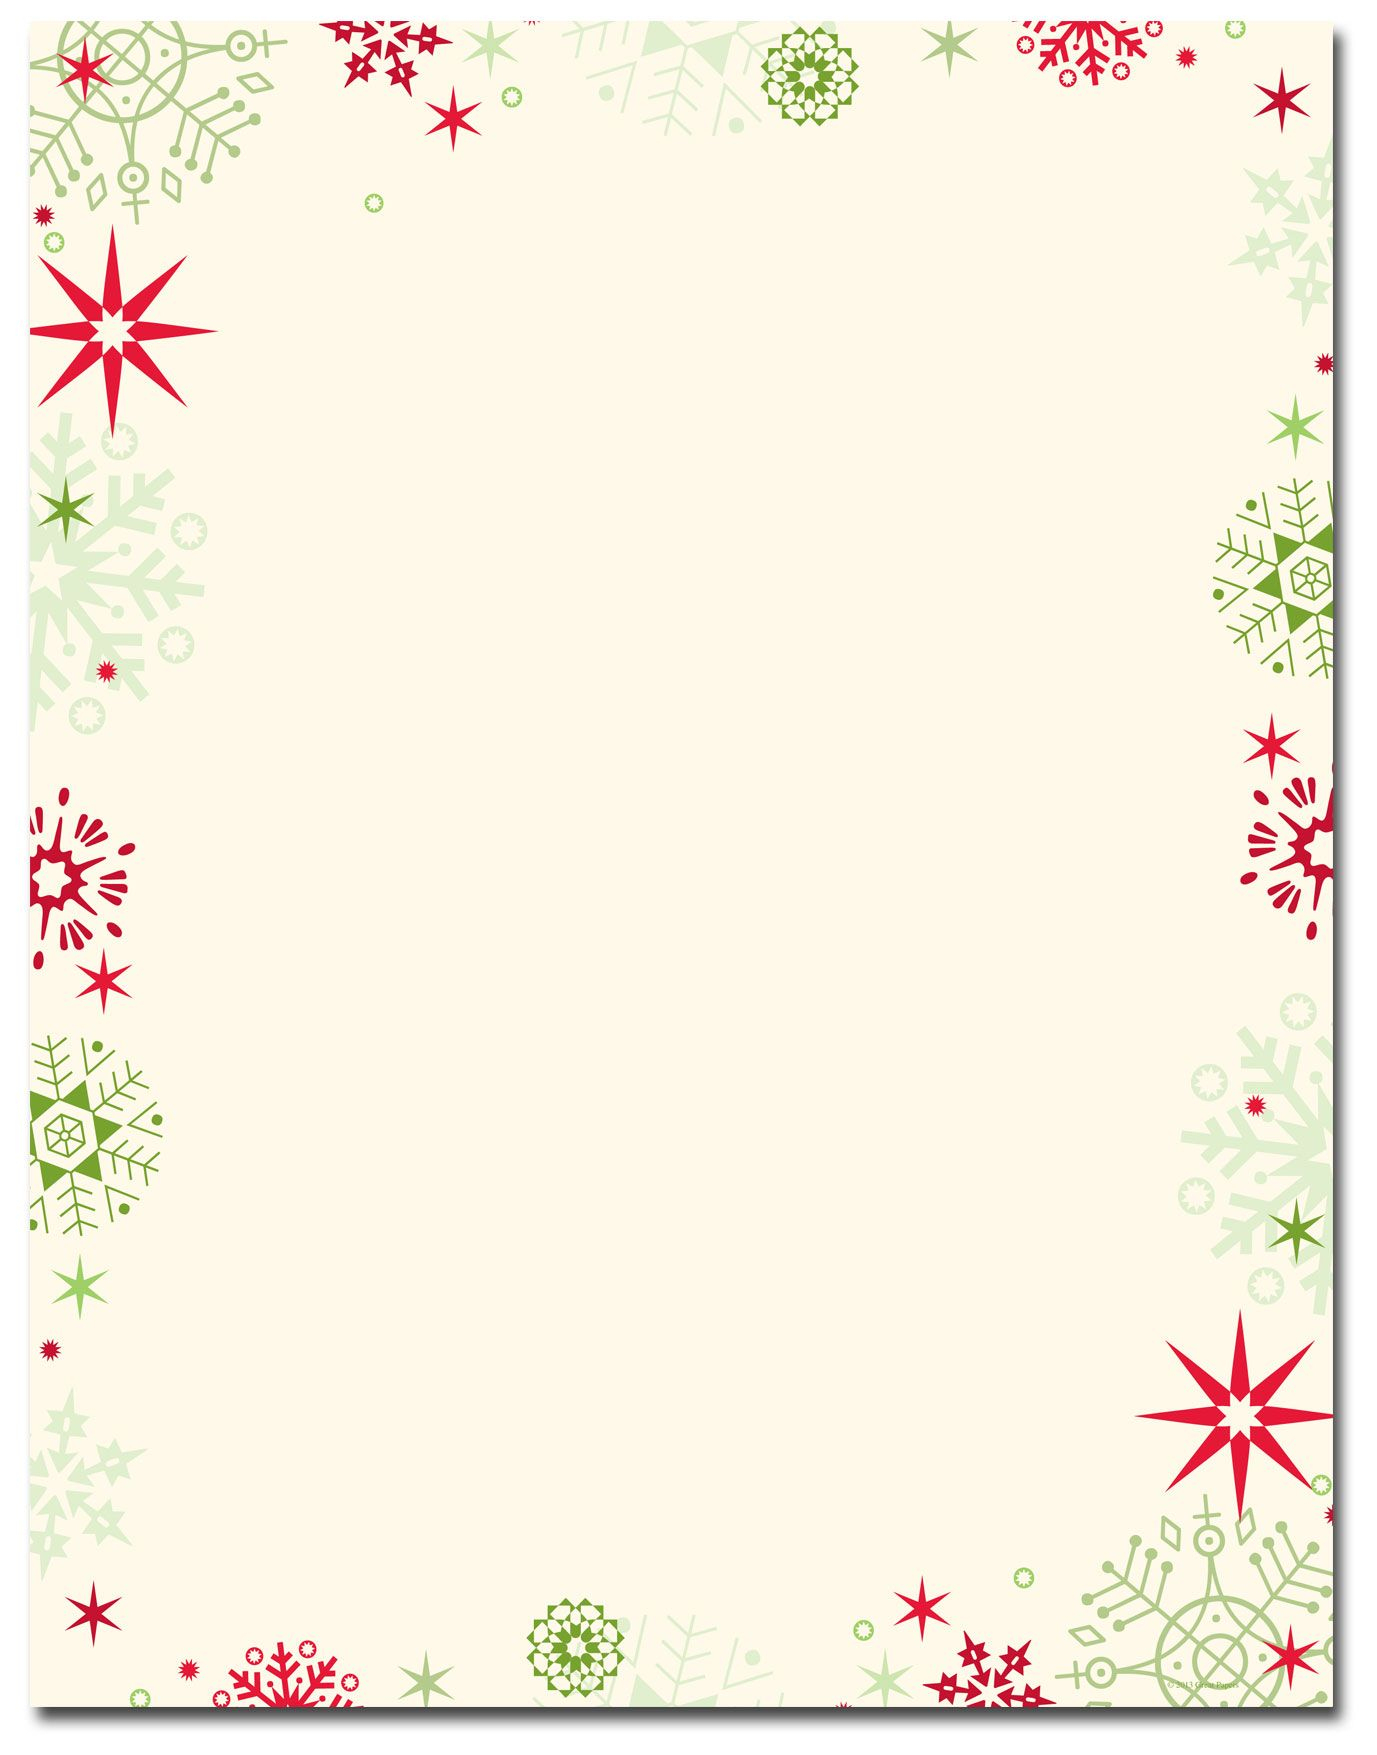 Red & Green Flakes Letterhead | Holiday Papers | Pinterest - Free Printable Christmas Borders